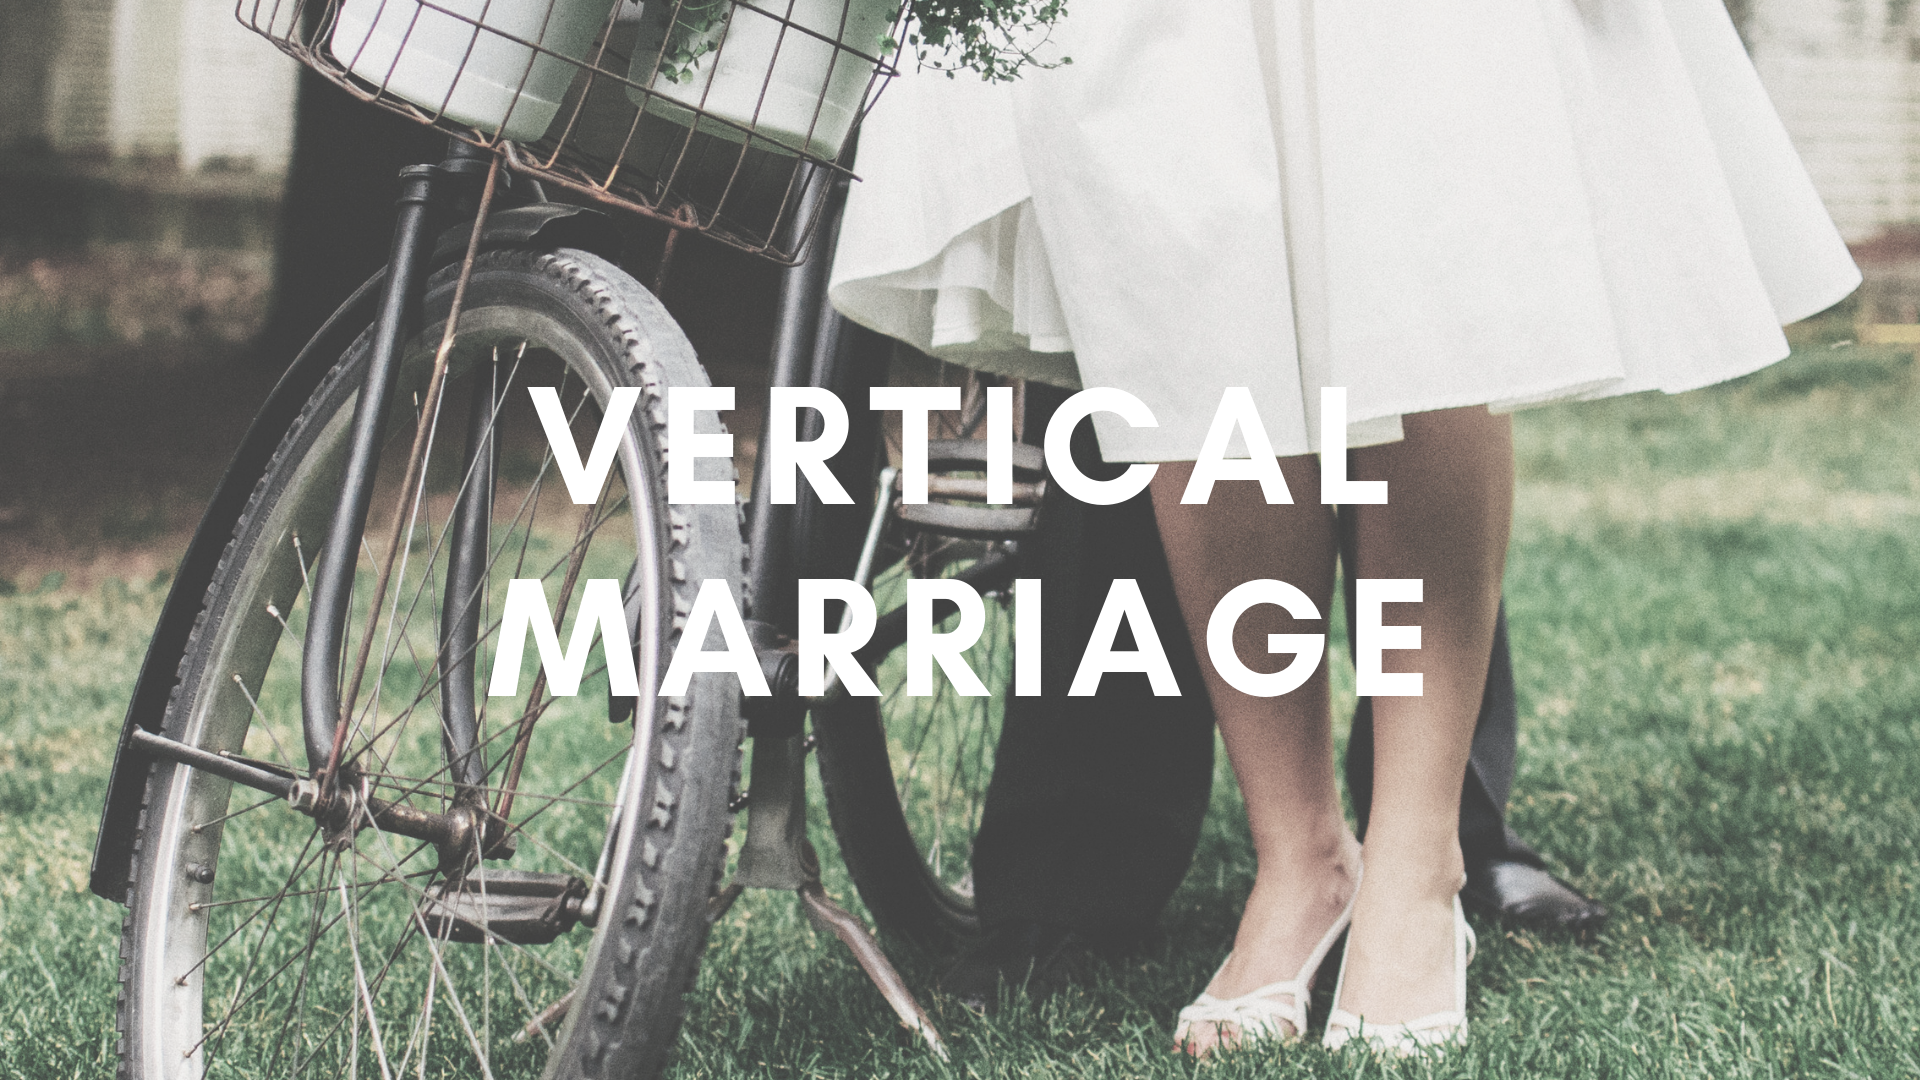 Vertical Marriage image